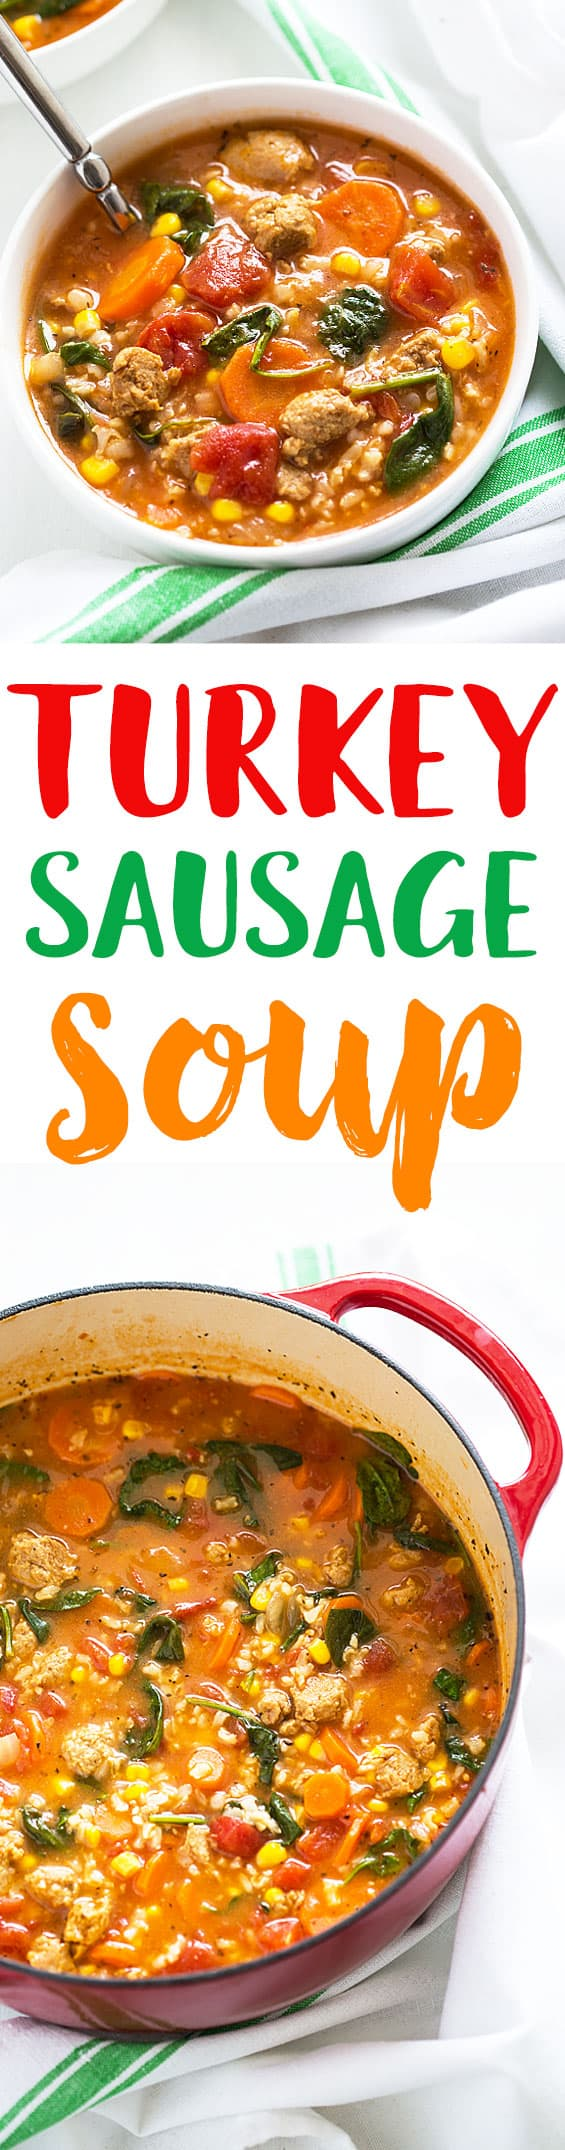 Two images of soup.  Text in center says turkey sausage soup.